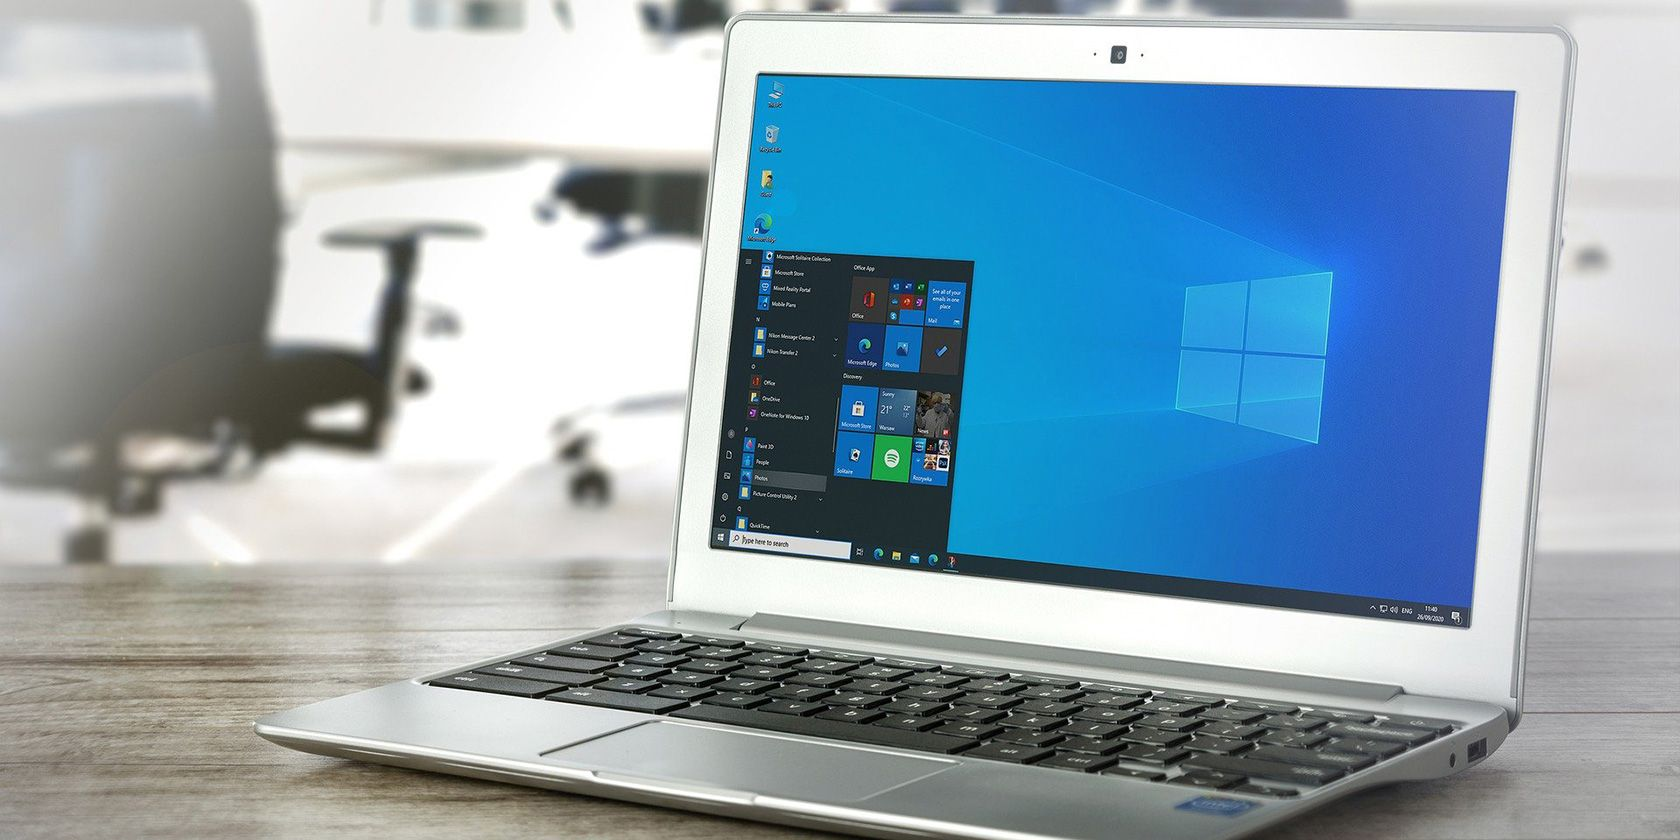 How to Automatically Move Files From One Folder to Another on Windows and Mac